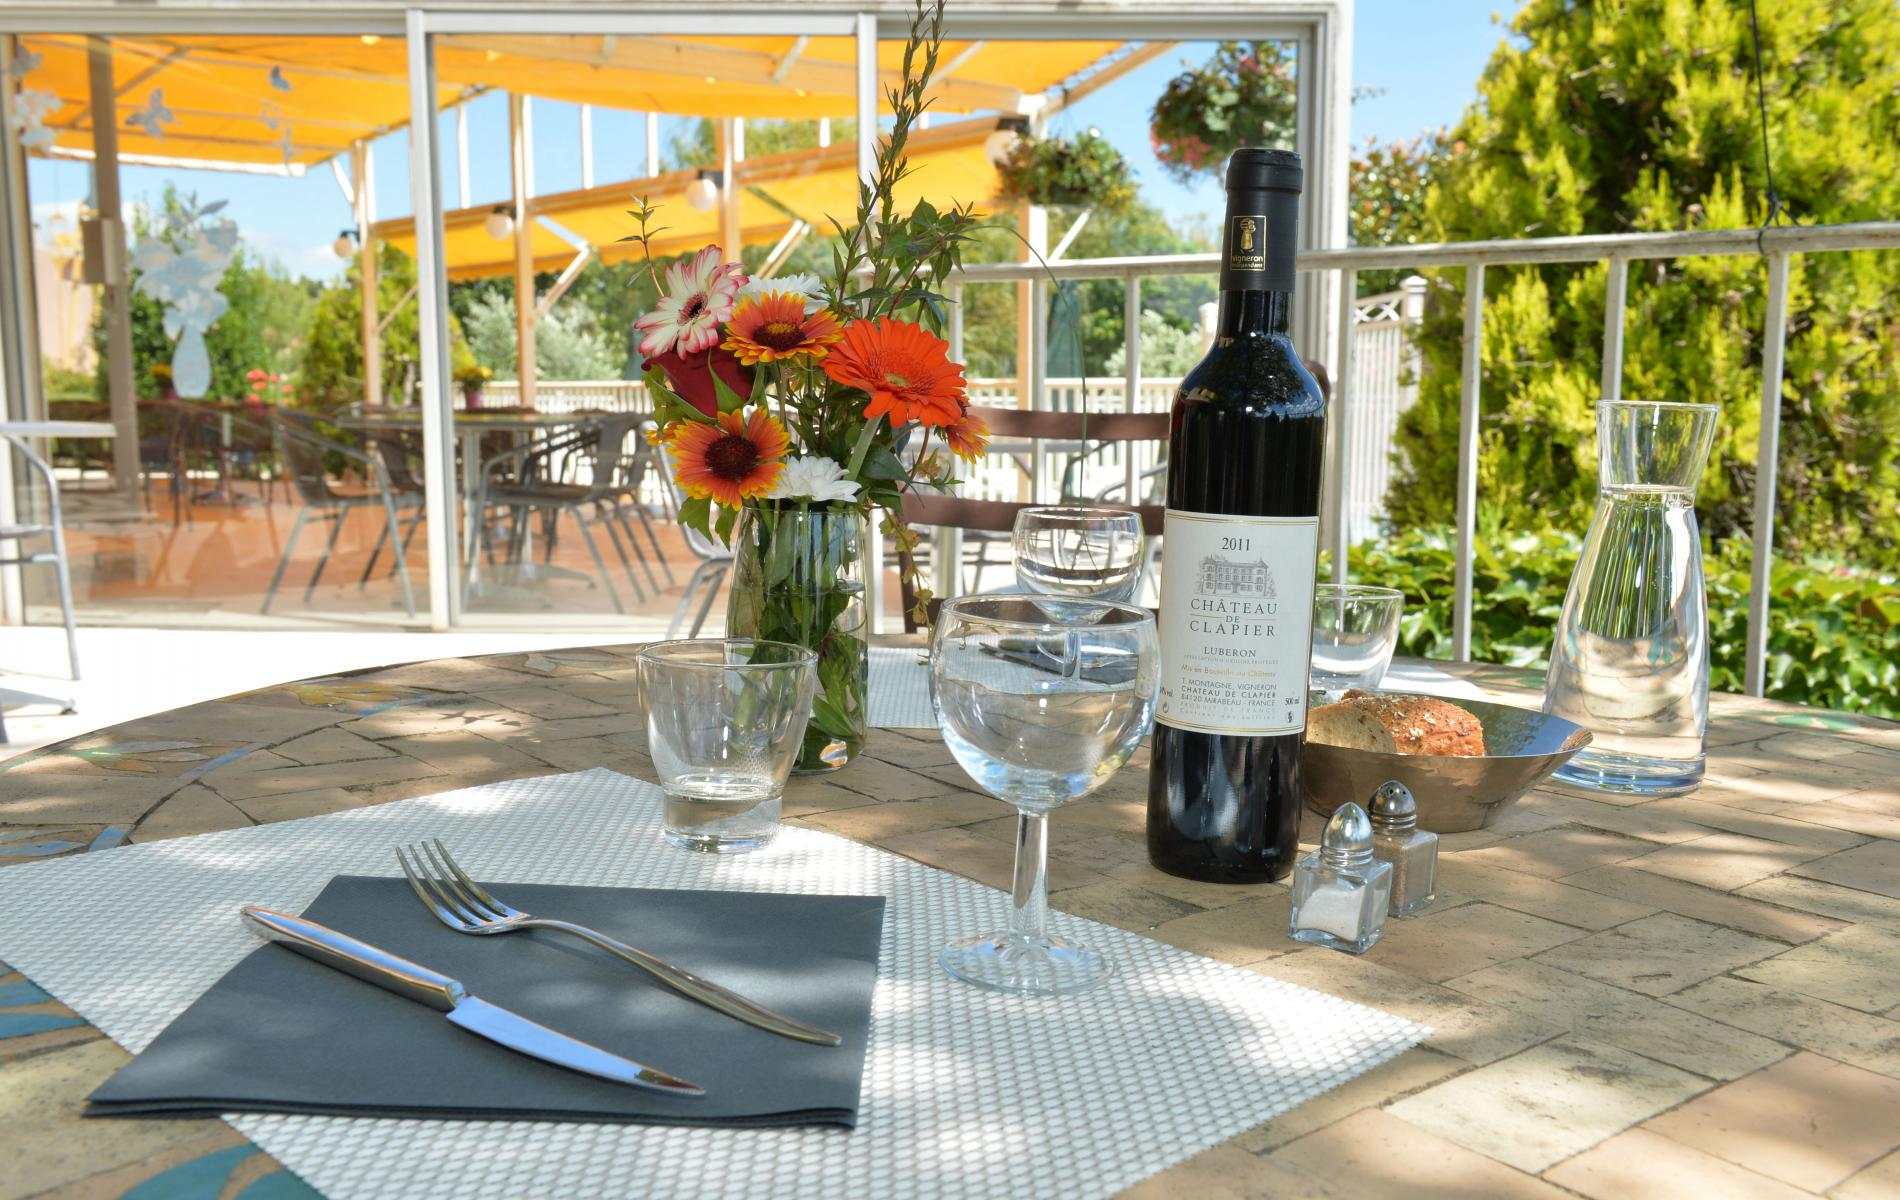 Family restaurant with terrace, near Lourmarin and Cucuron